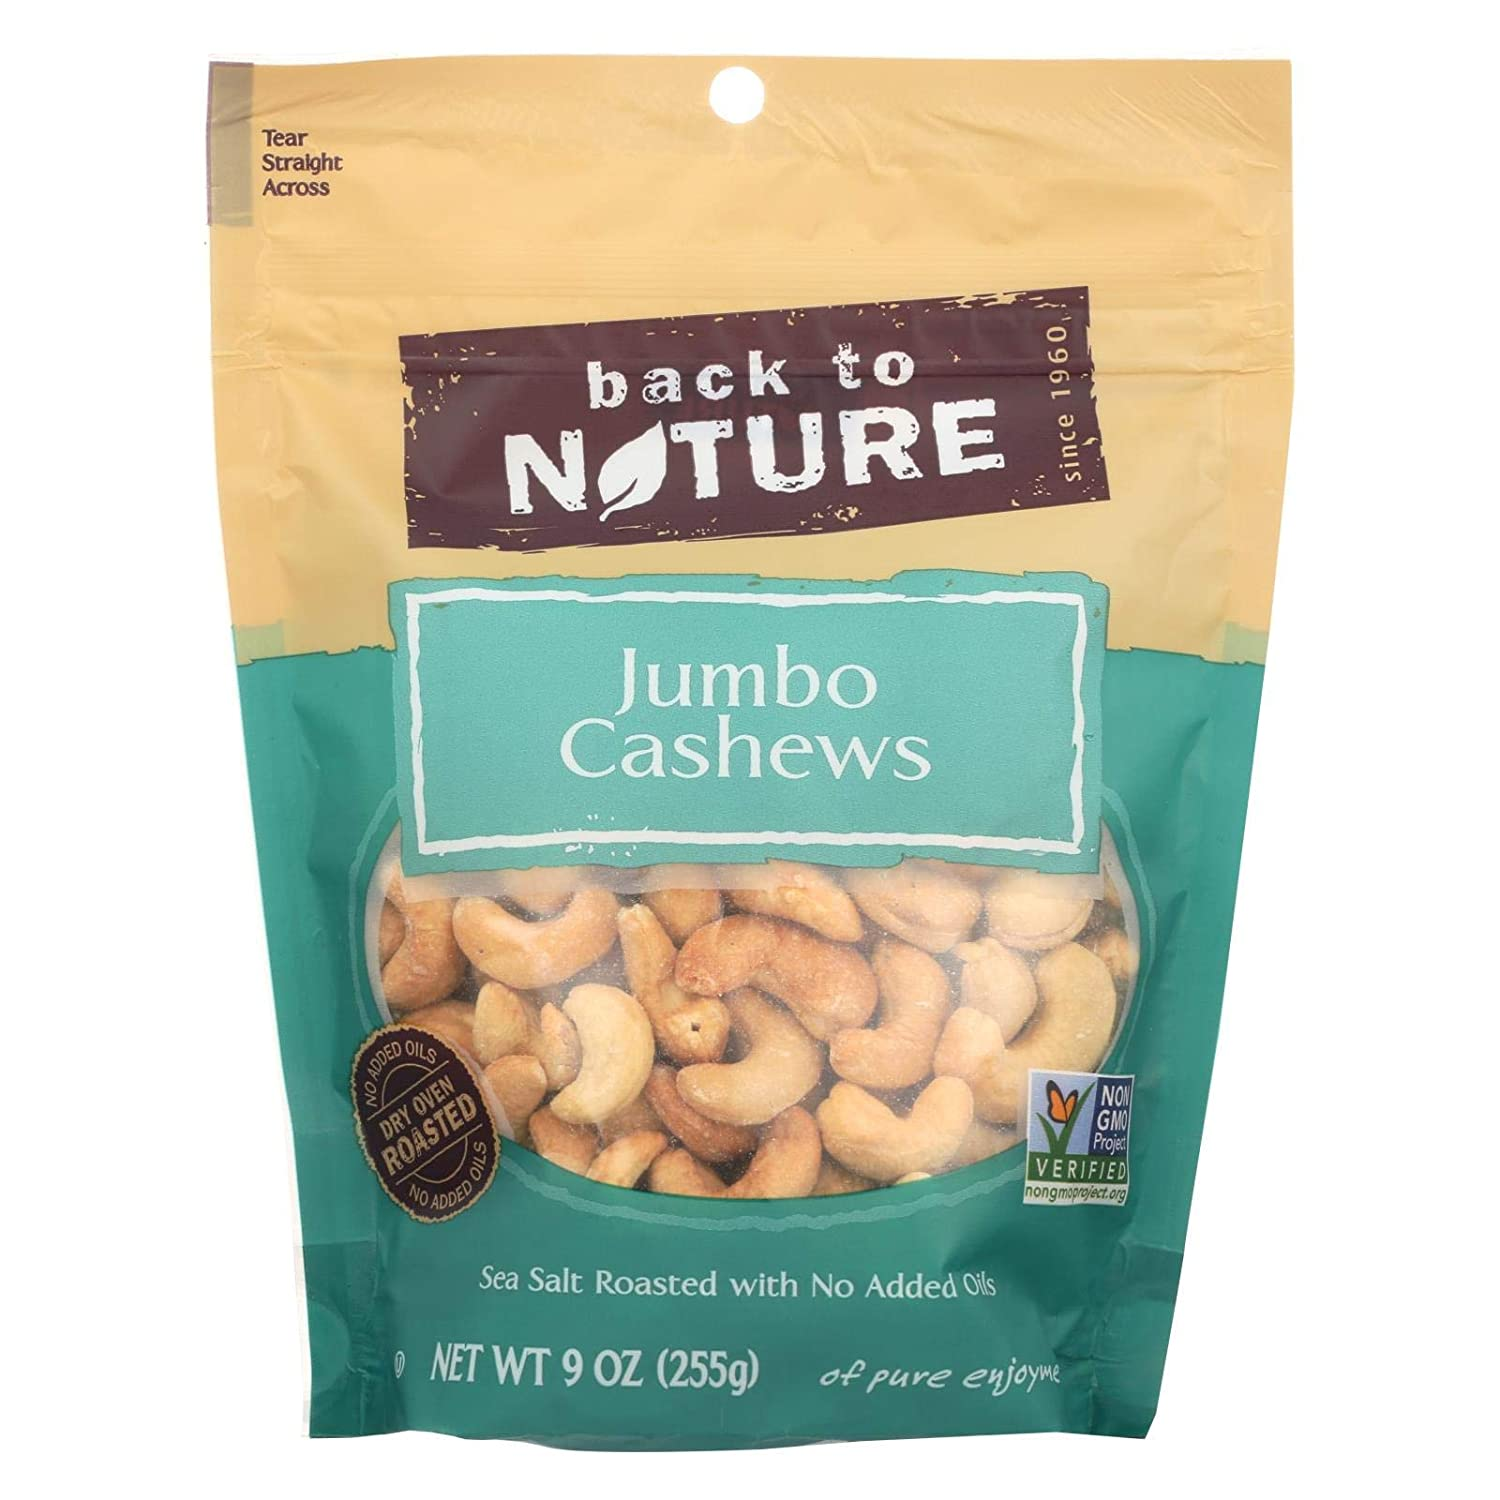 Back to Nature Sea Salt Roasted Jumbo Cashews Nuts, 9 Ounce -- 9 per case.